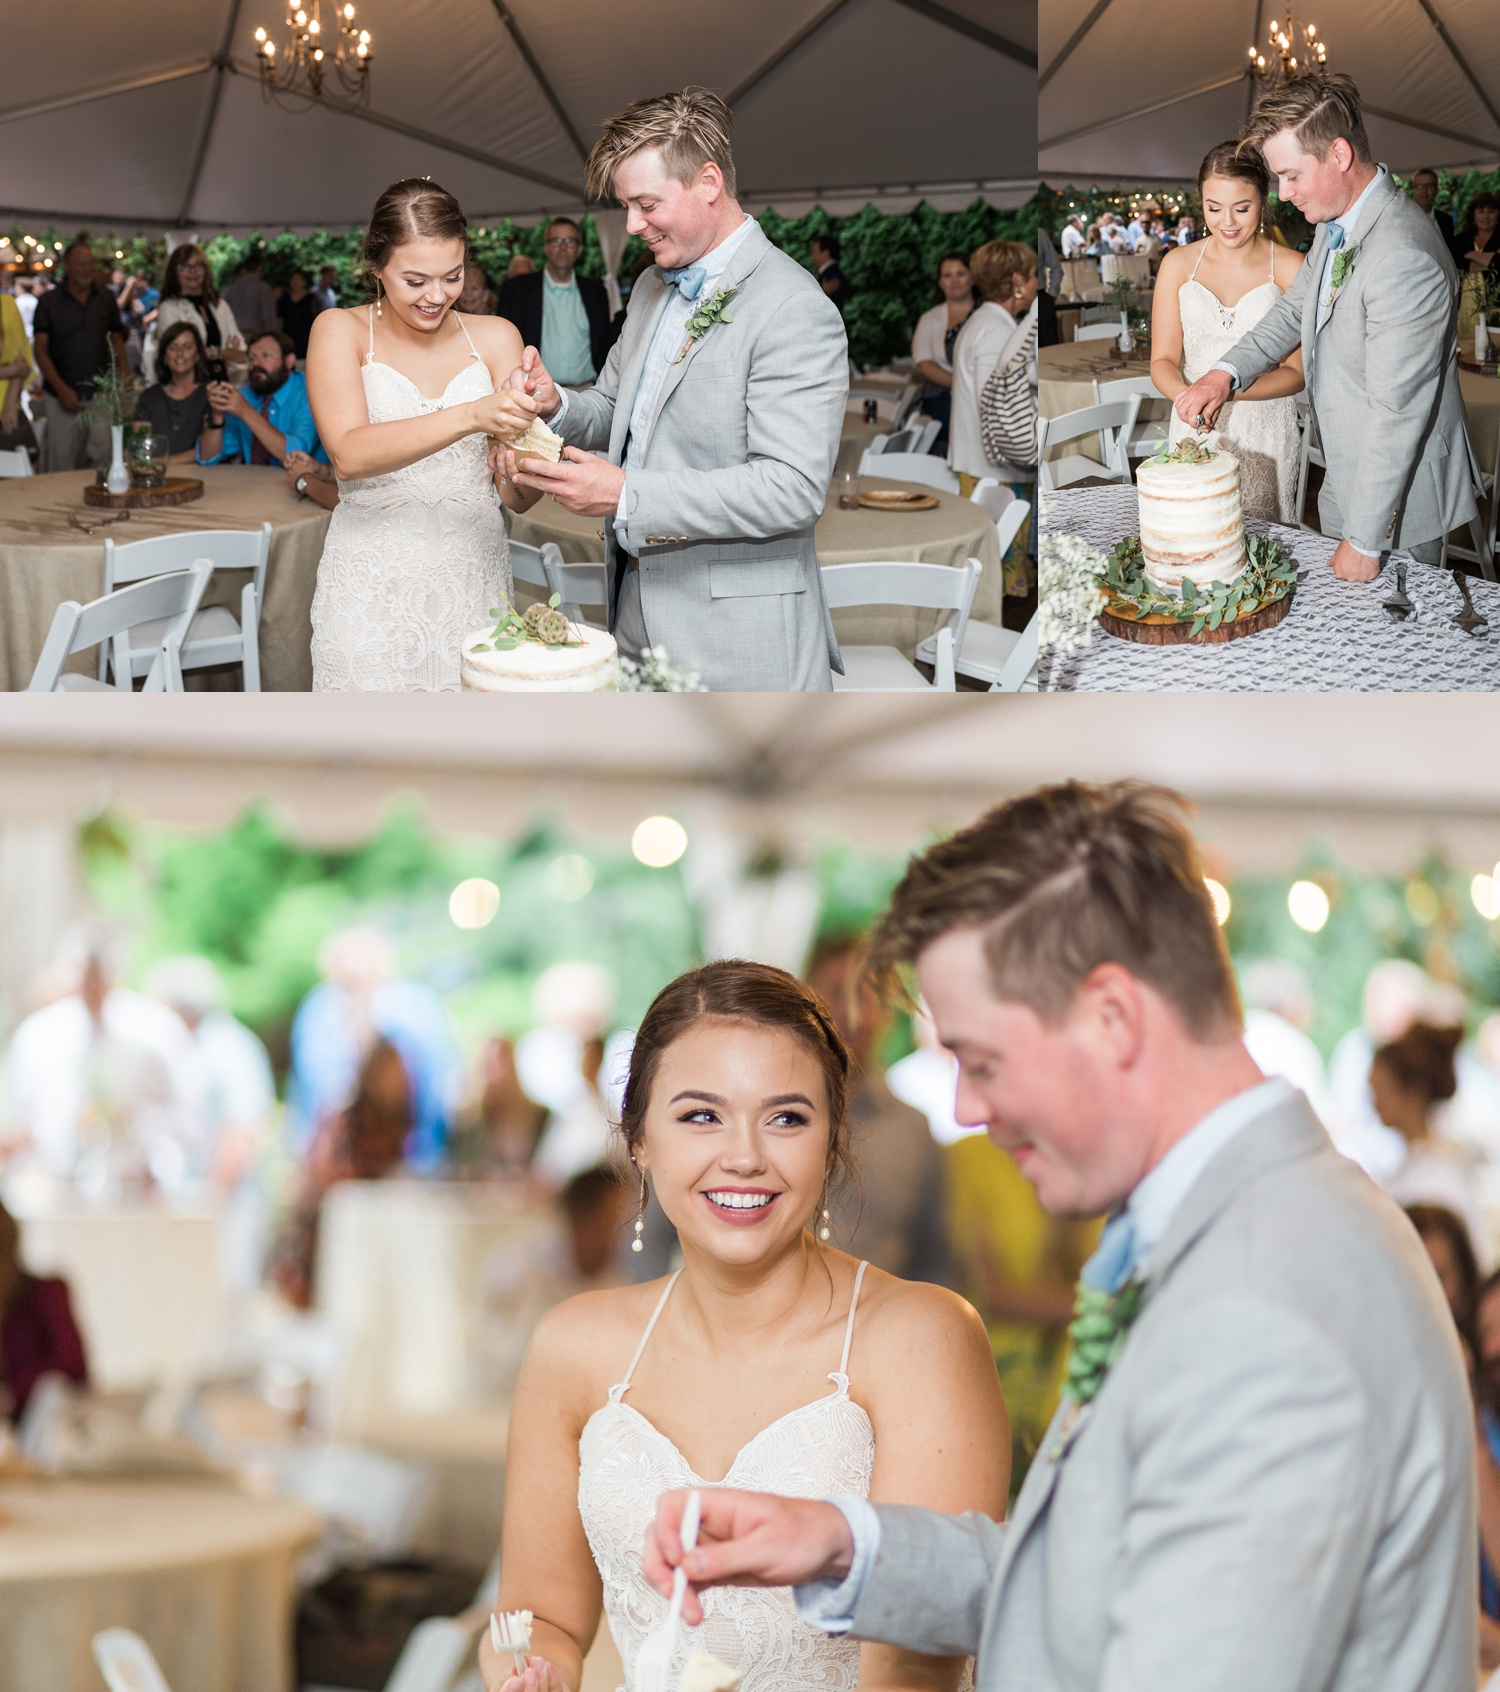 A bride and groom cut their wedding cake during a reception for a summer wedding at Maroni Meadows in Snohomish, a wedding venue near Seattle, WA. | Joanna Monger Photography | Seattle & Snohomish Photographer